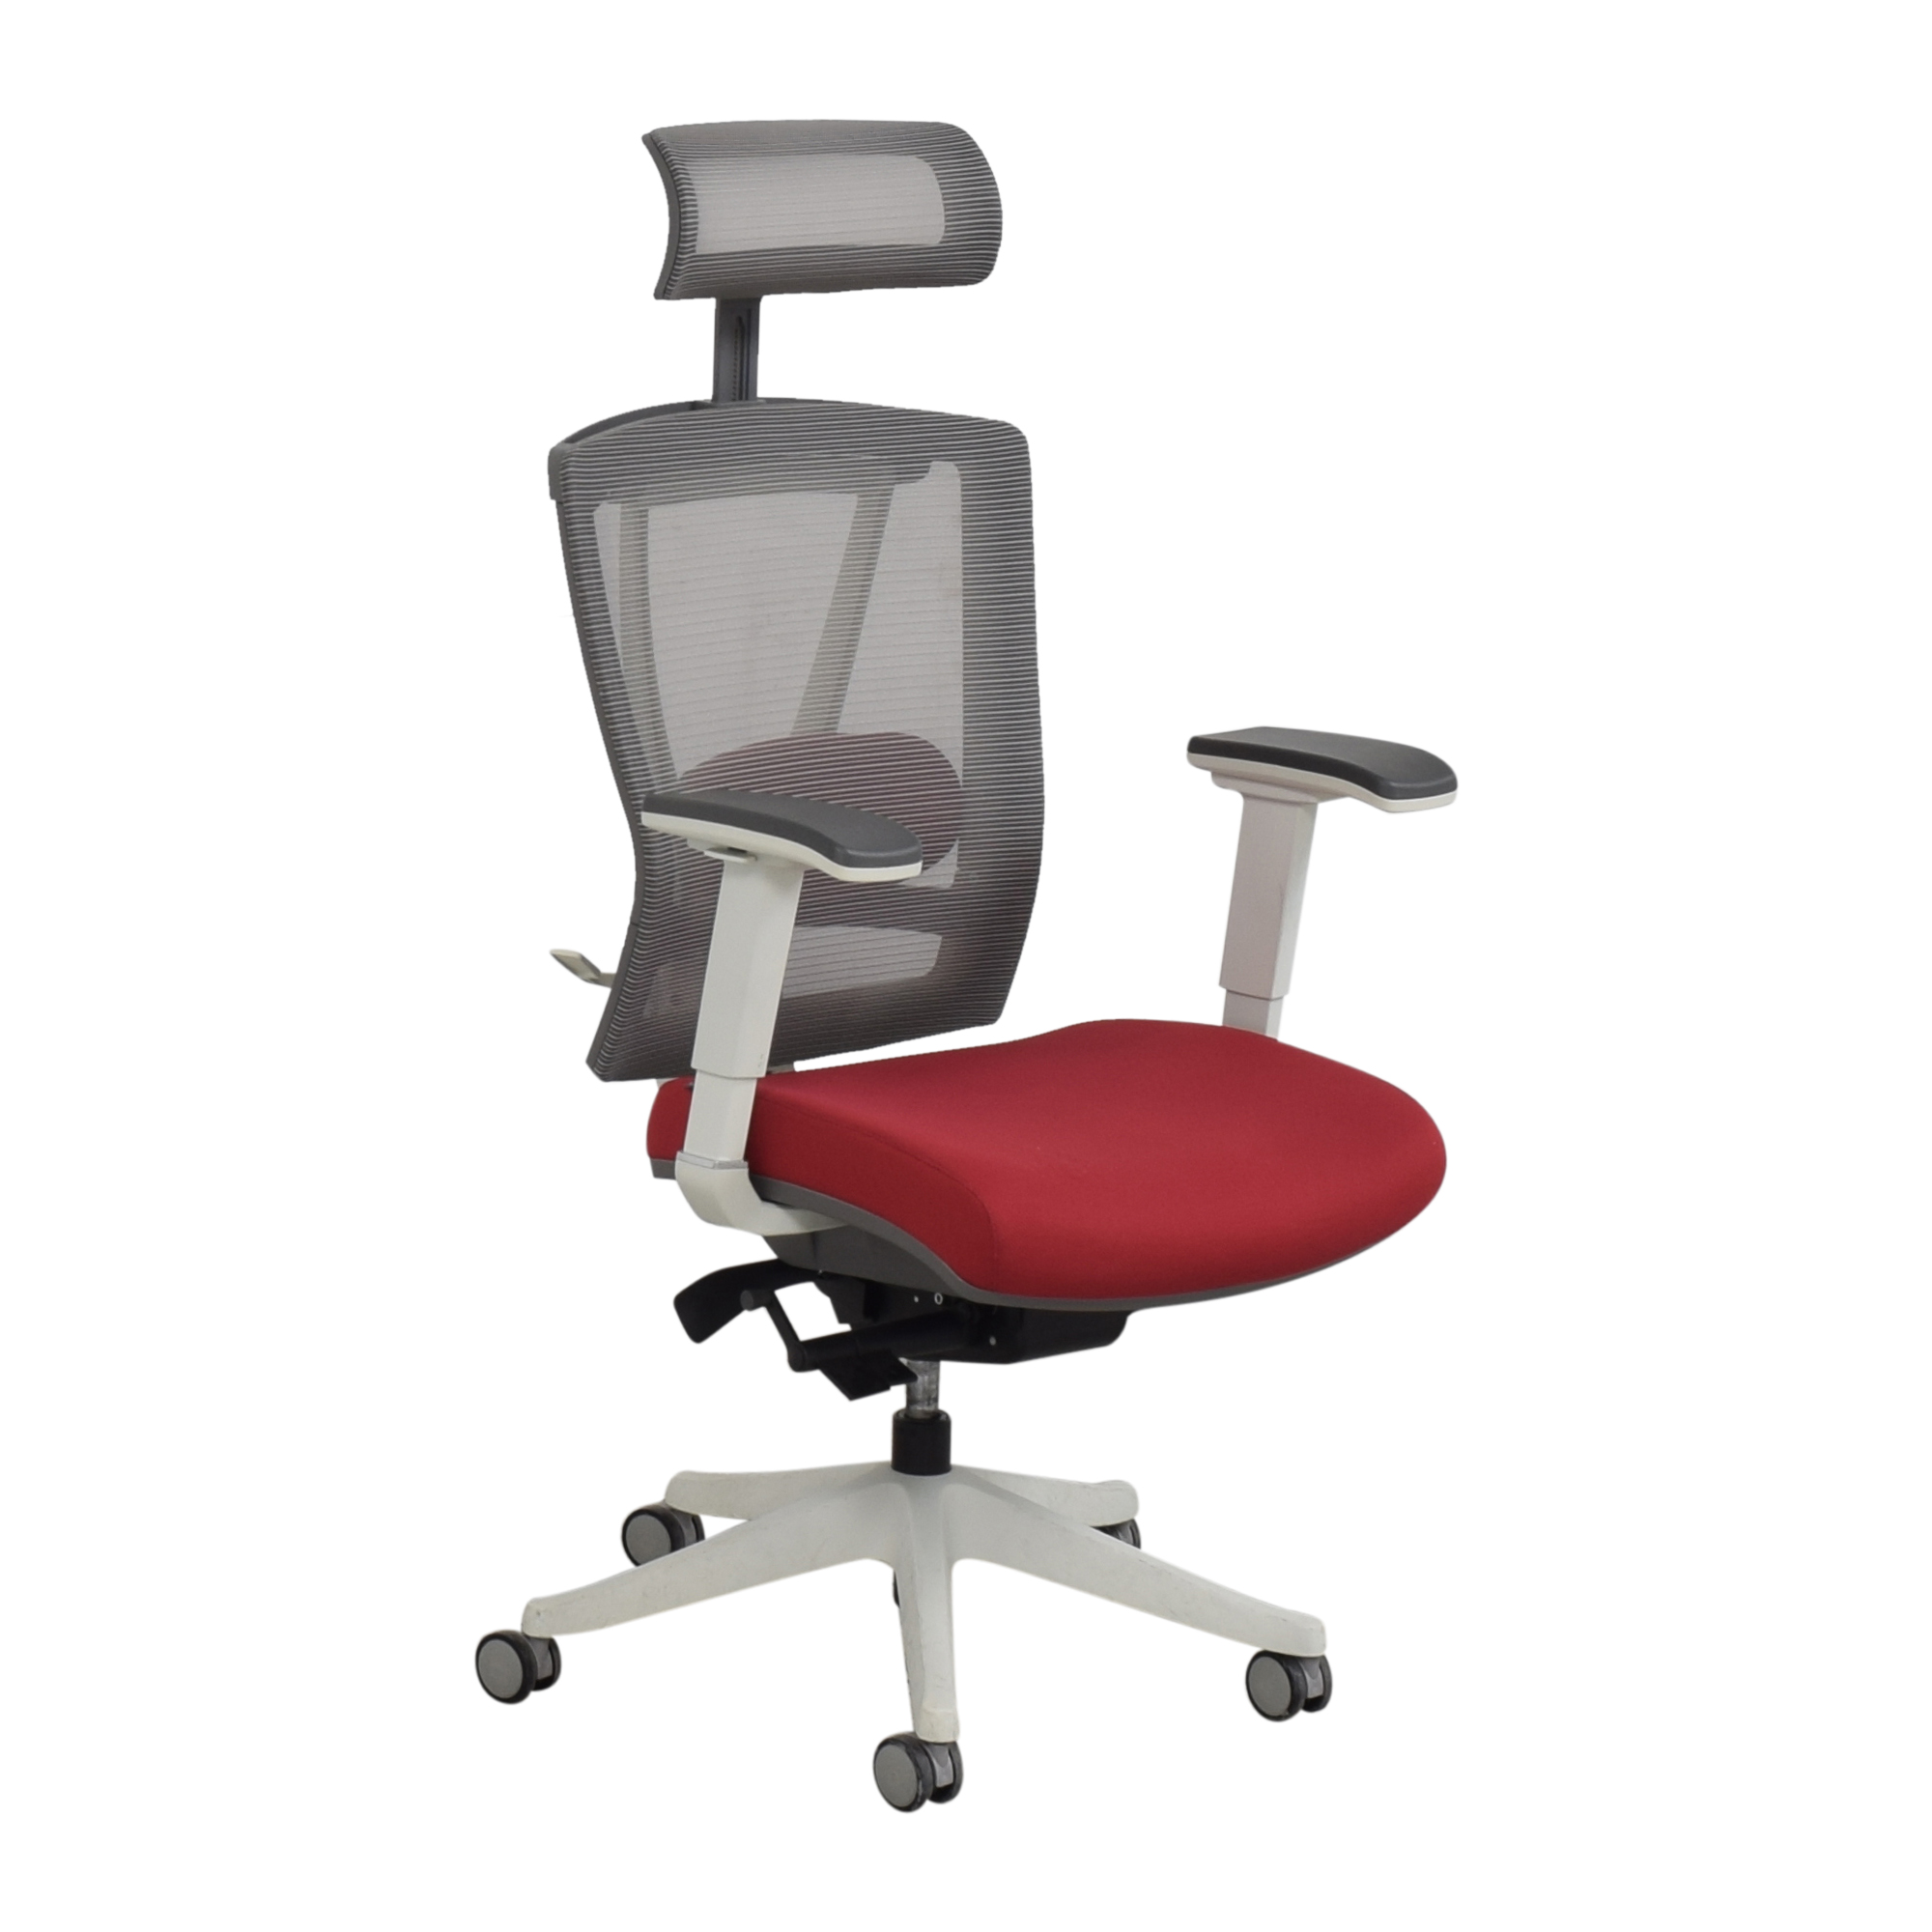 Autonomous Autonomous ErgoChair 2 Office Chair discount